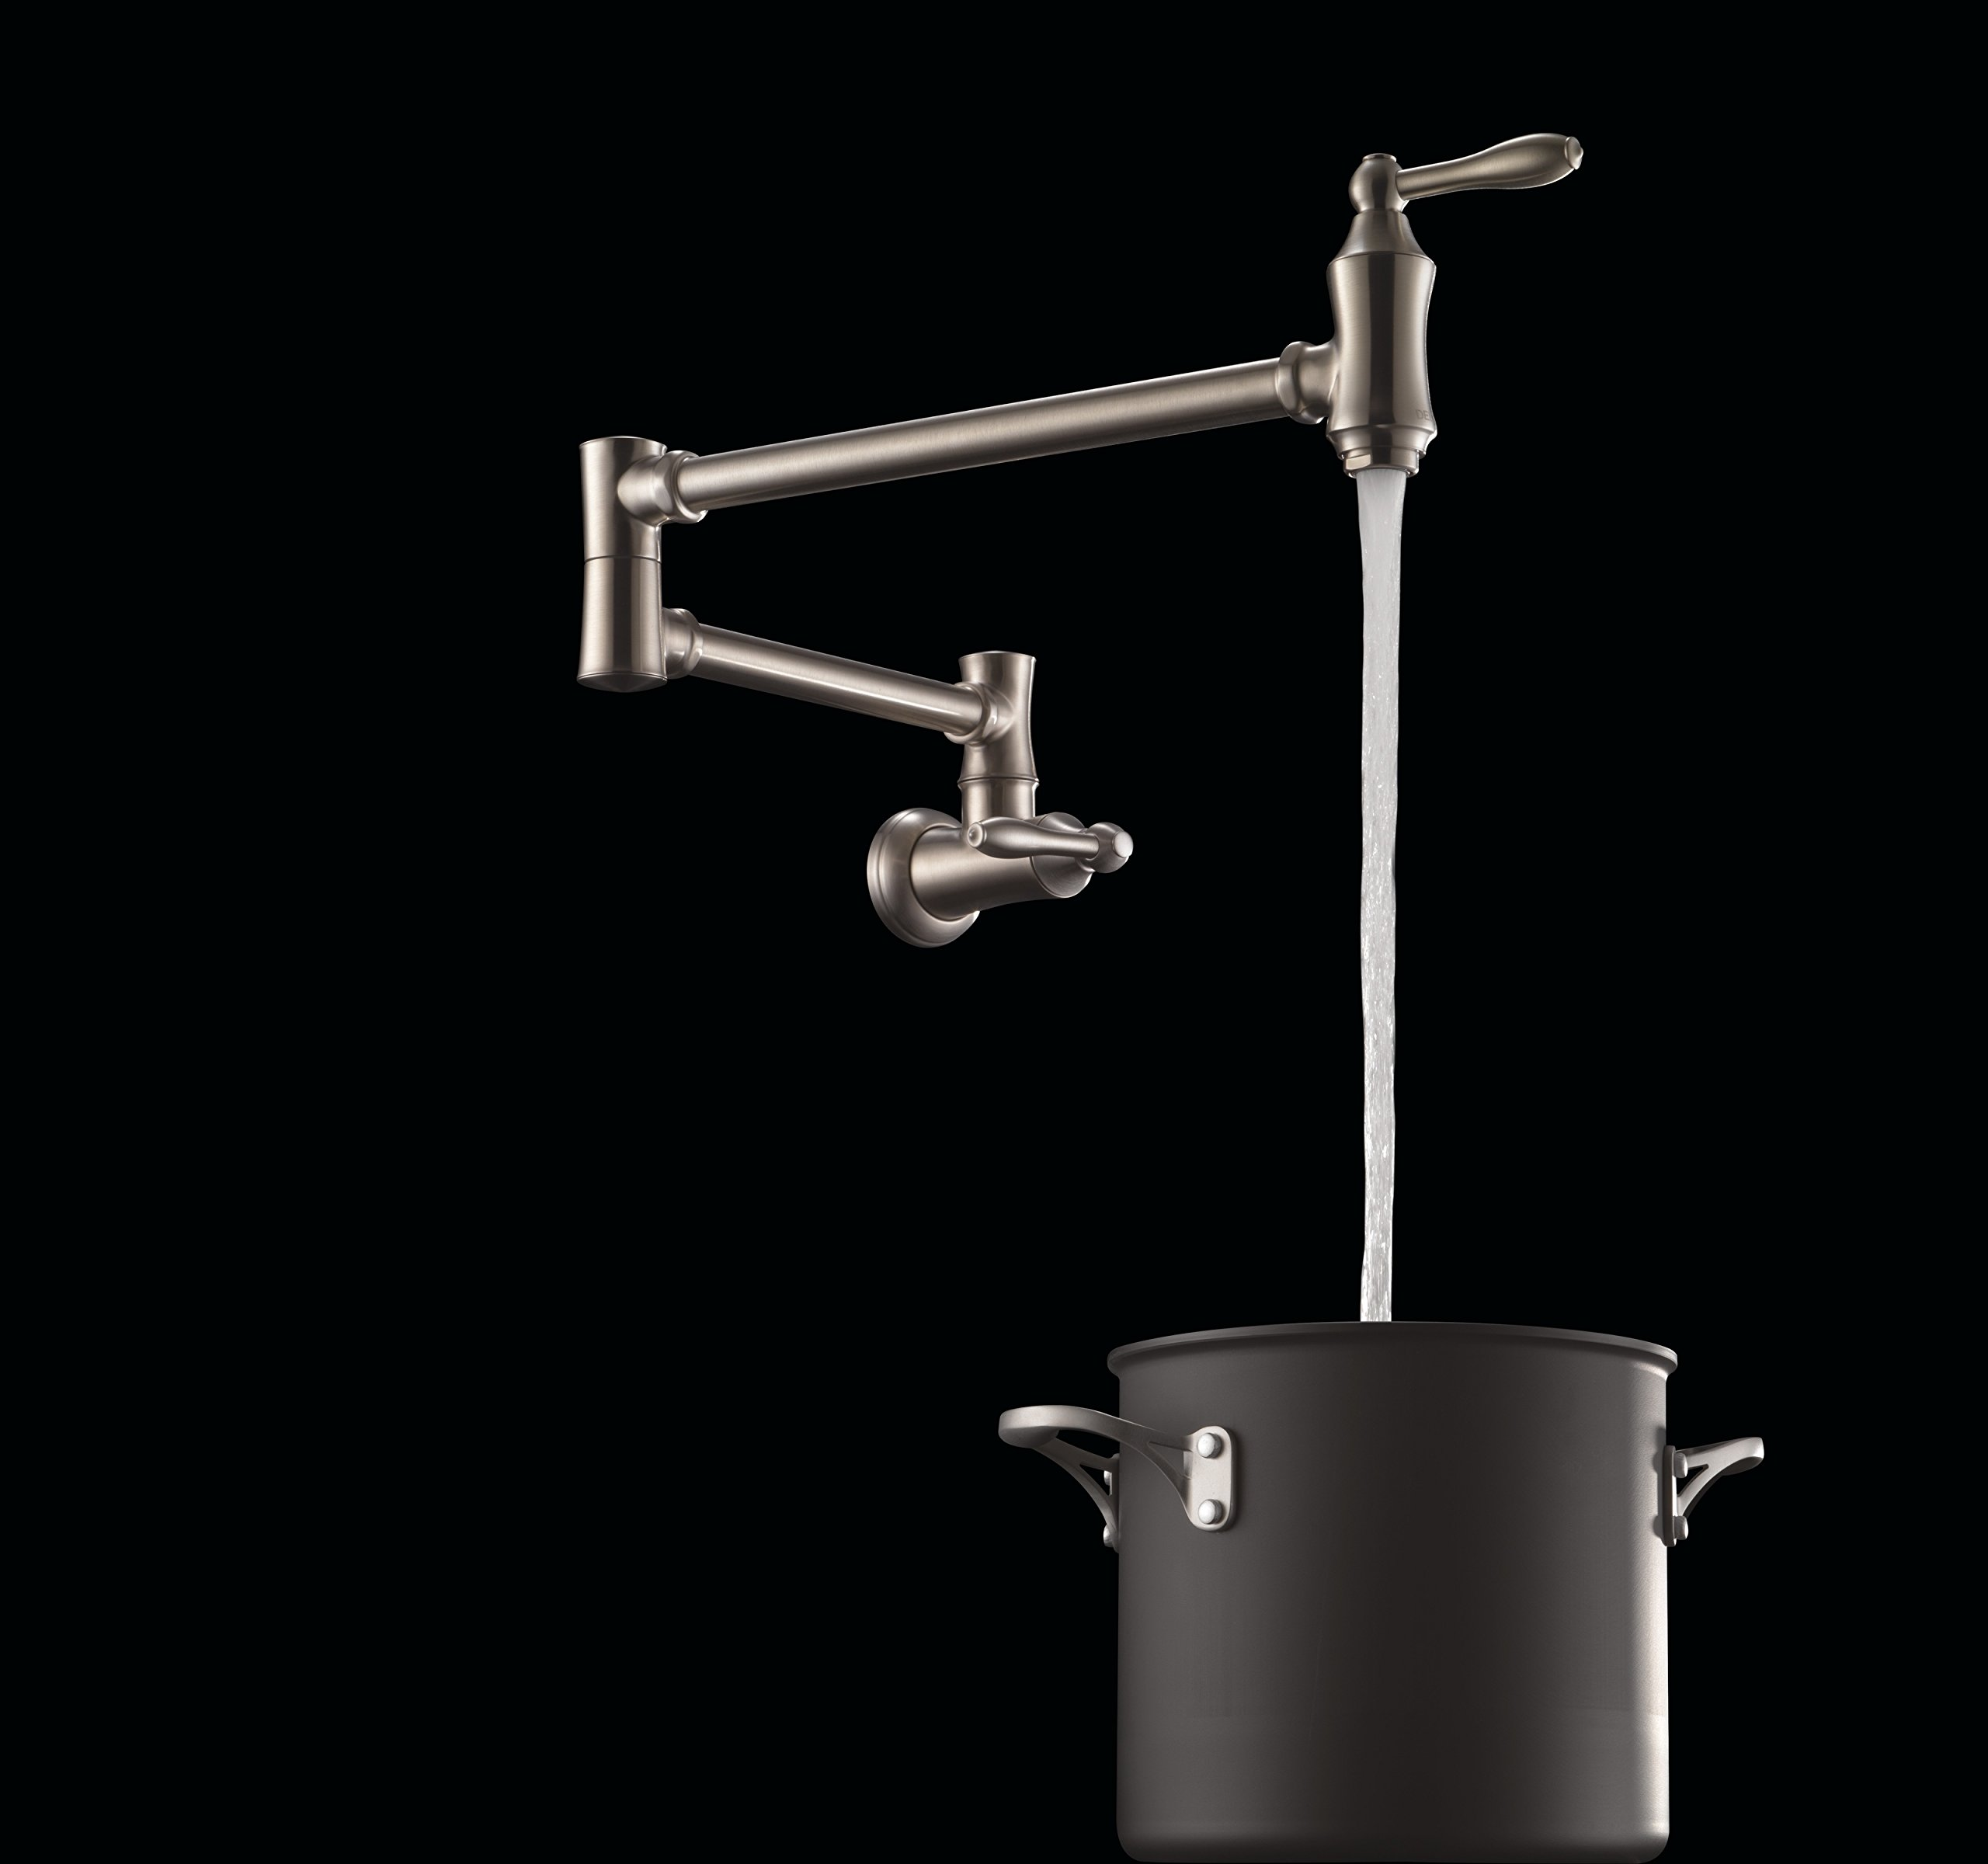 Delta Faucet Traditional Wall-Mount Pot Filler Faucet, Stainless 1177LF-SS by DELTA FAUCET (Image #5)